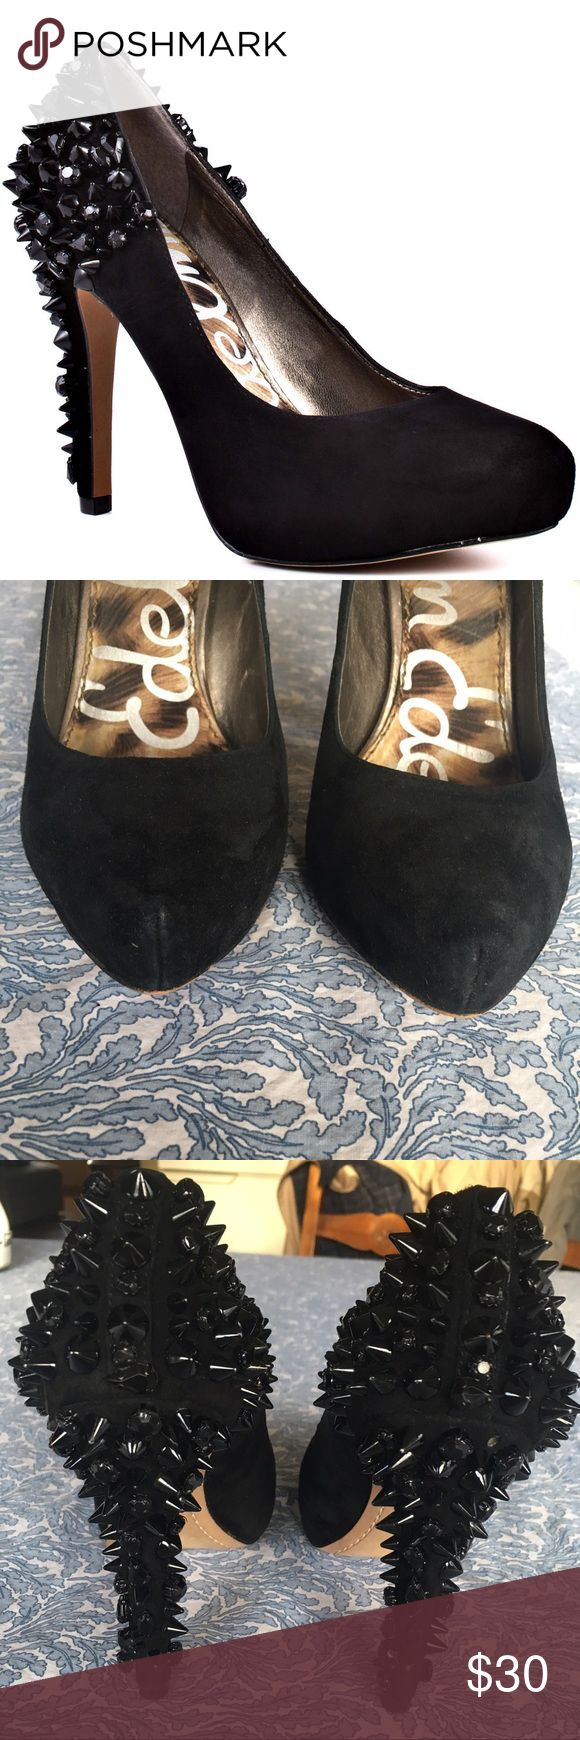 Sam Edelman Roza spiked suede platform pumps Amazing amazing statement shoe!! Lots of life left. Missing 1 spike. Some wear/scuffs to the exterior that I haven't tried to clean. Sam Edelman Shoes Heels